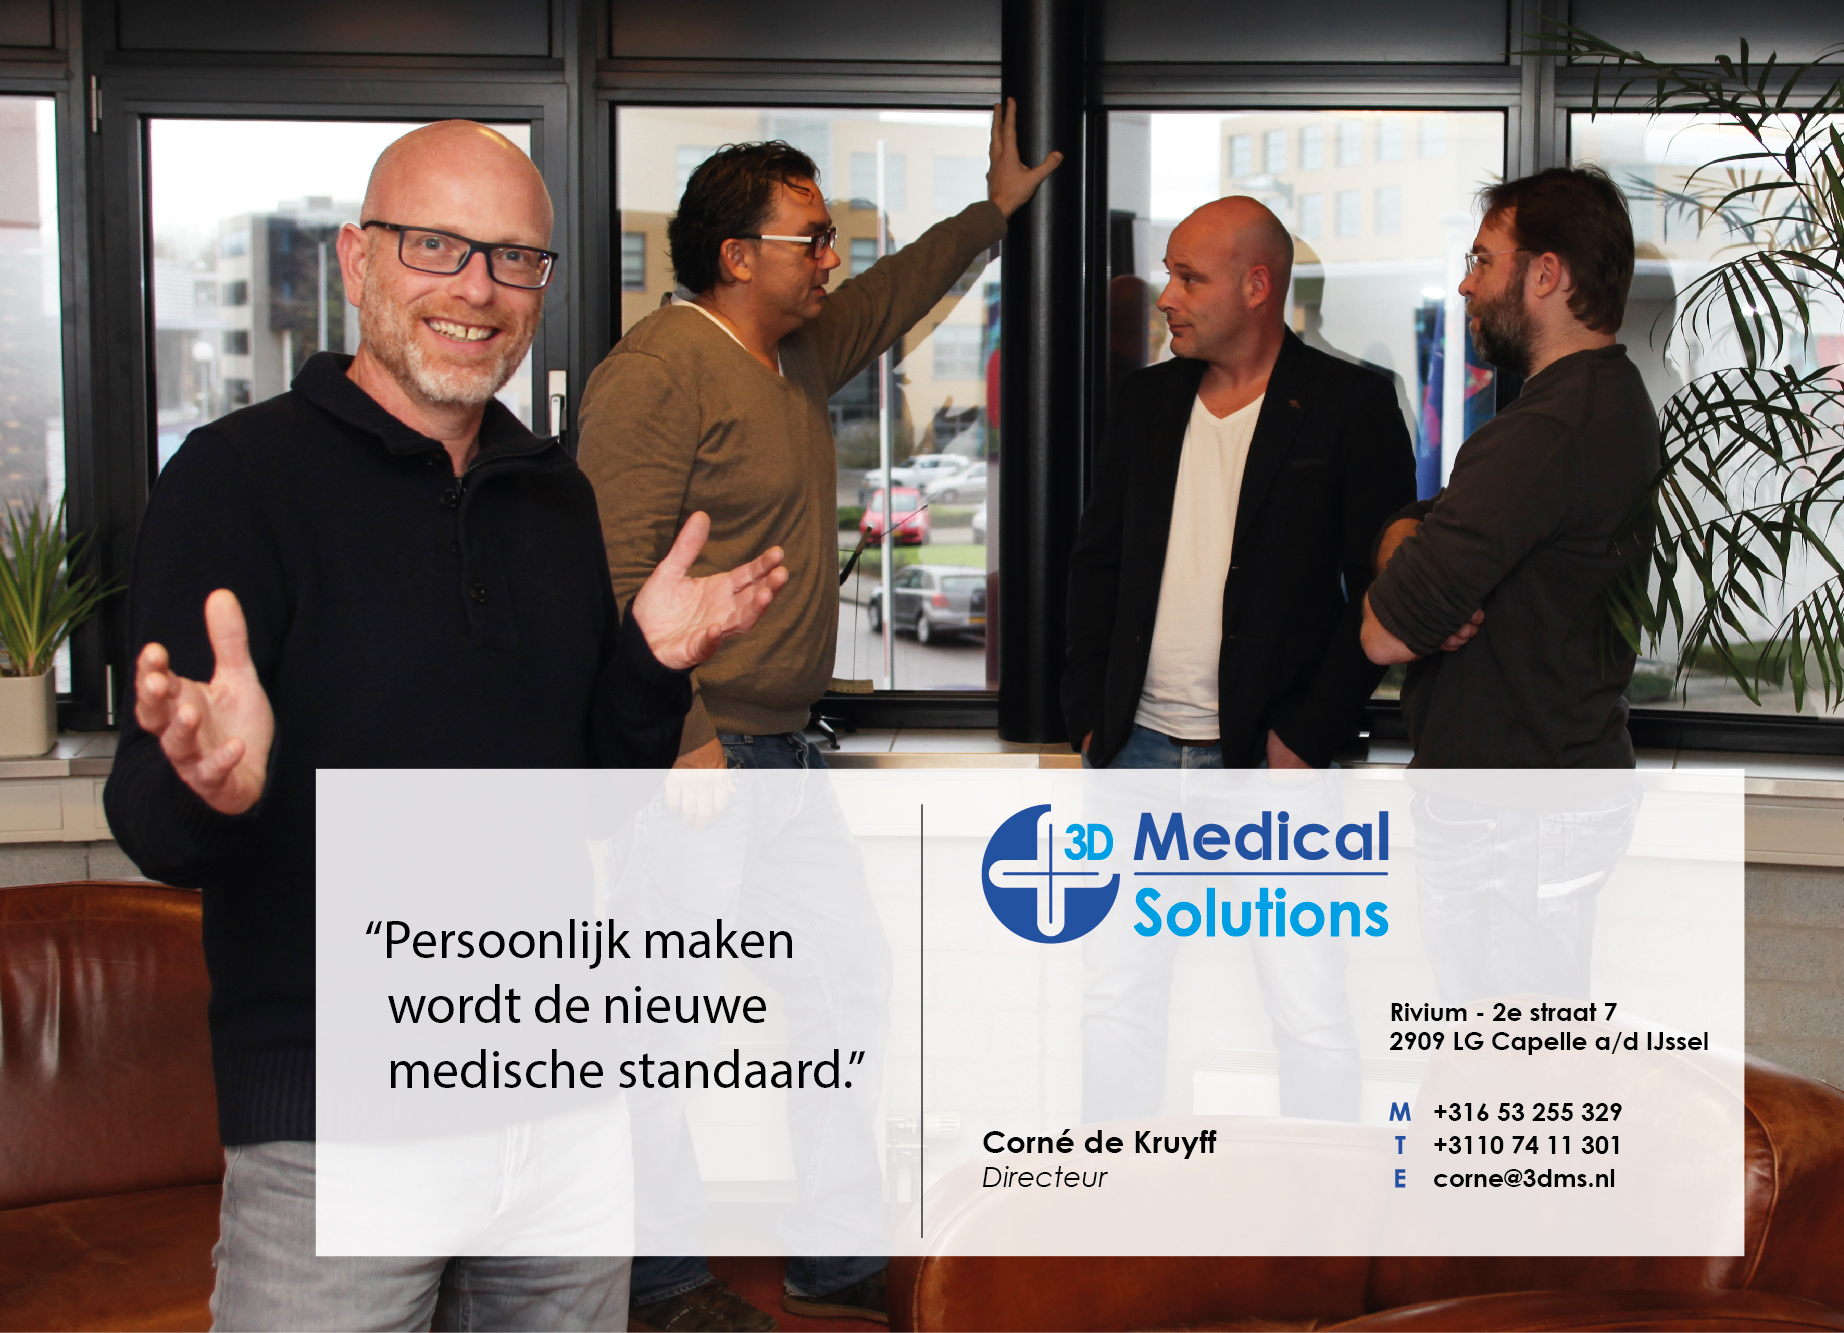 Corné de Kruyff, 3D Medical Solutions